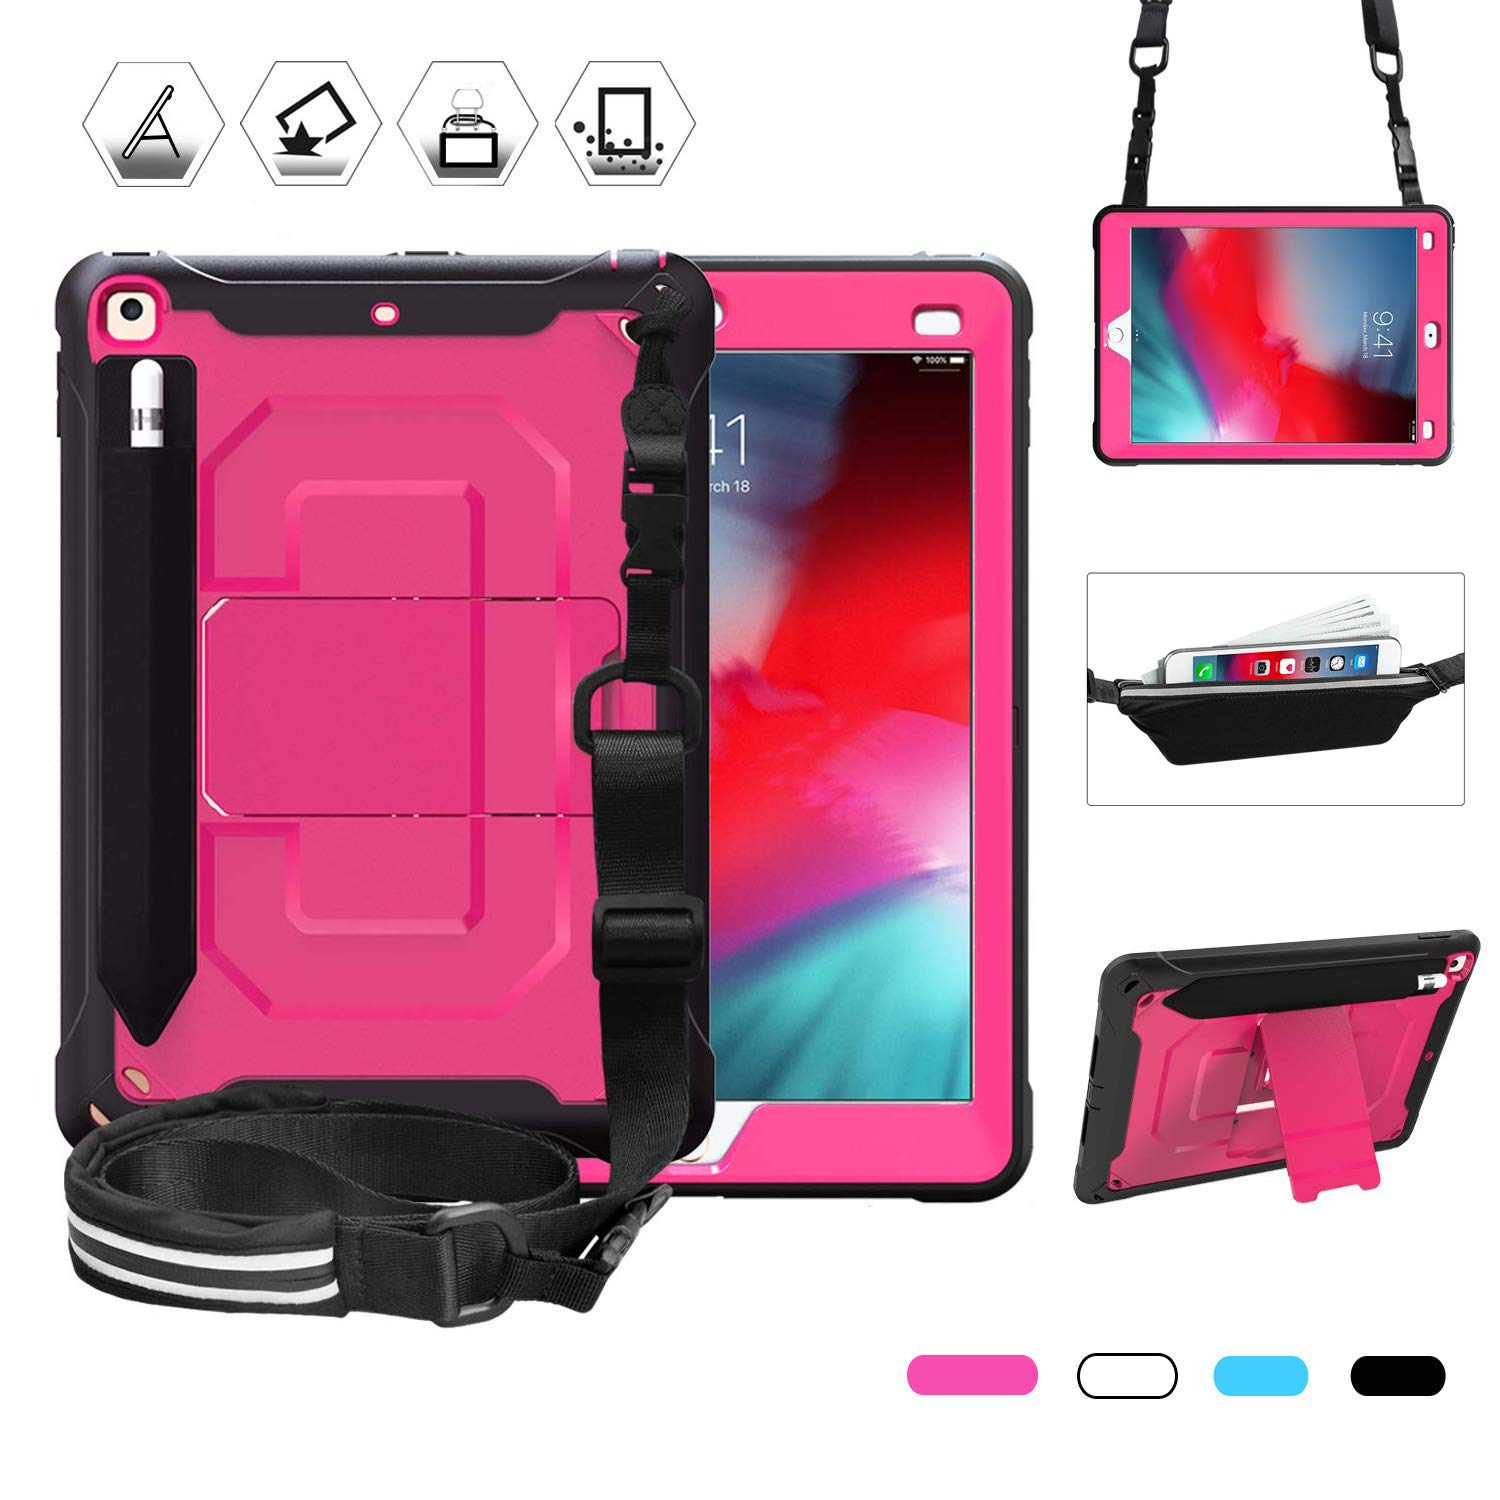 Junfire iPad 9.7 Case, iPad 2018 Case, Rugged Shockproof Heavy Duty Protective Case with Pencil Pen Holder, Kickstand, Shoulder Strap and Storage Pouch for iPad 9.7 Inch A1893 A1954 A1822,Rose